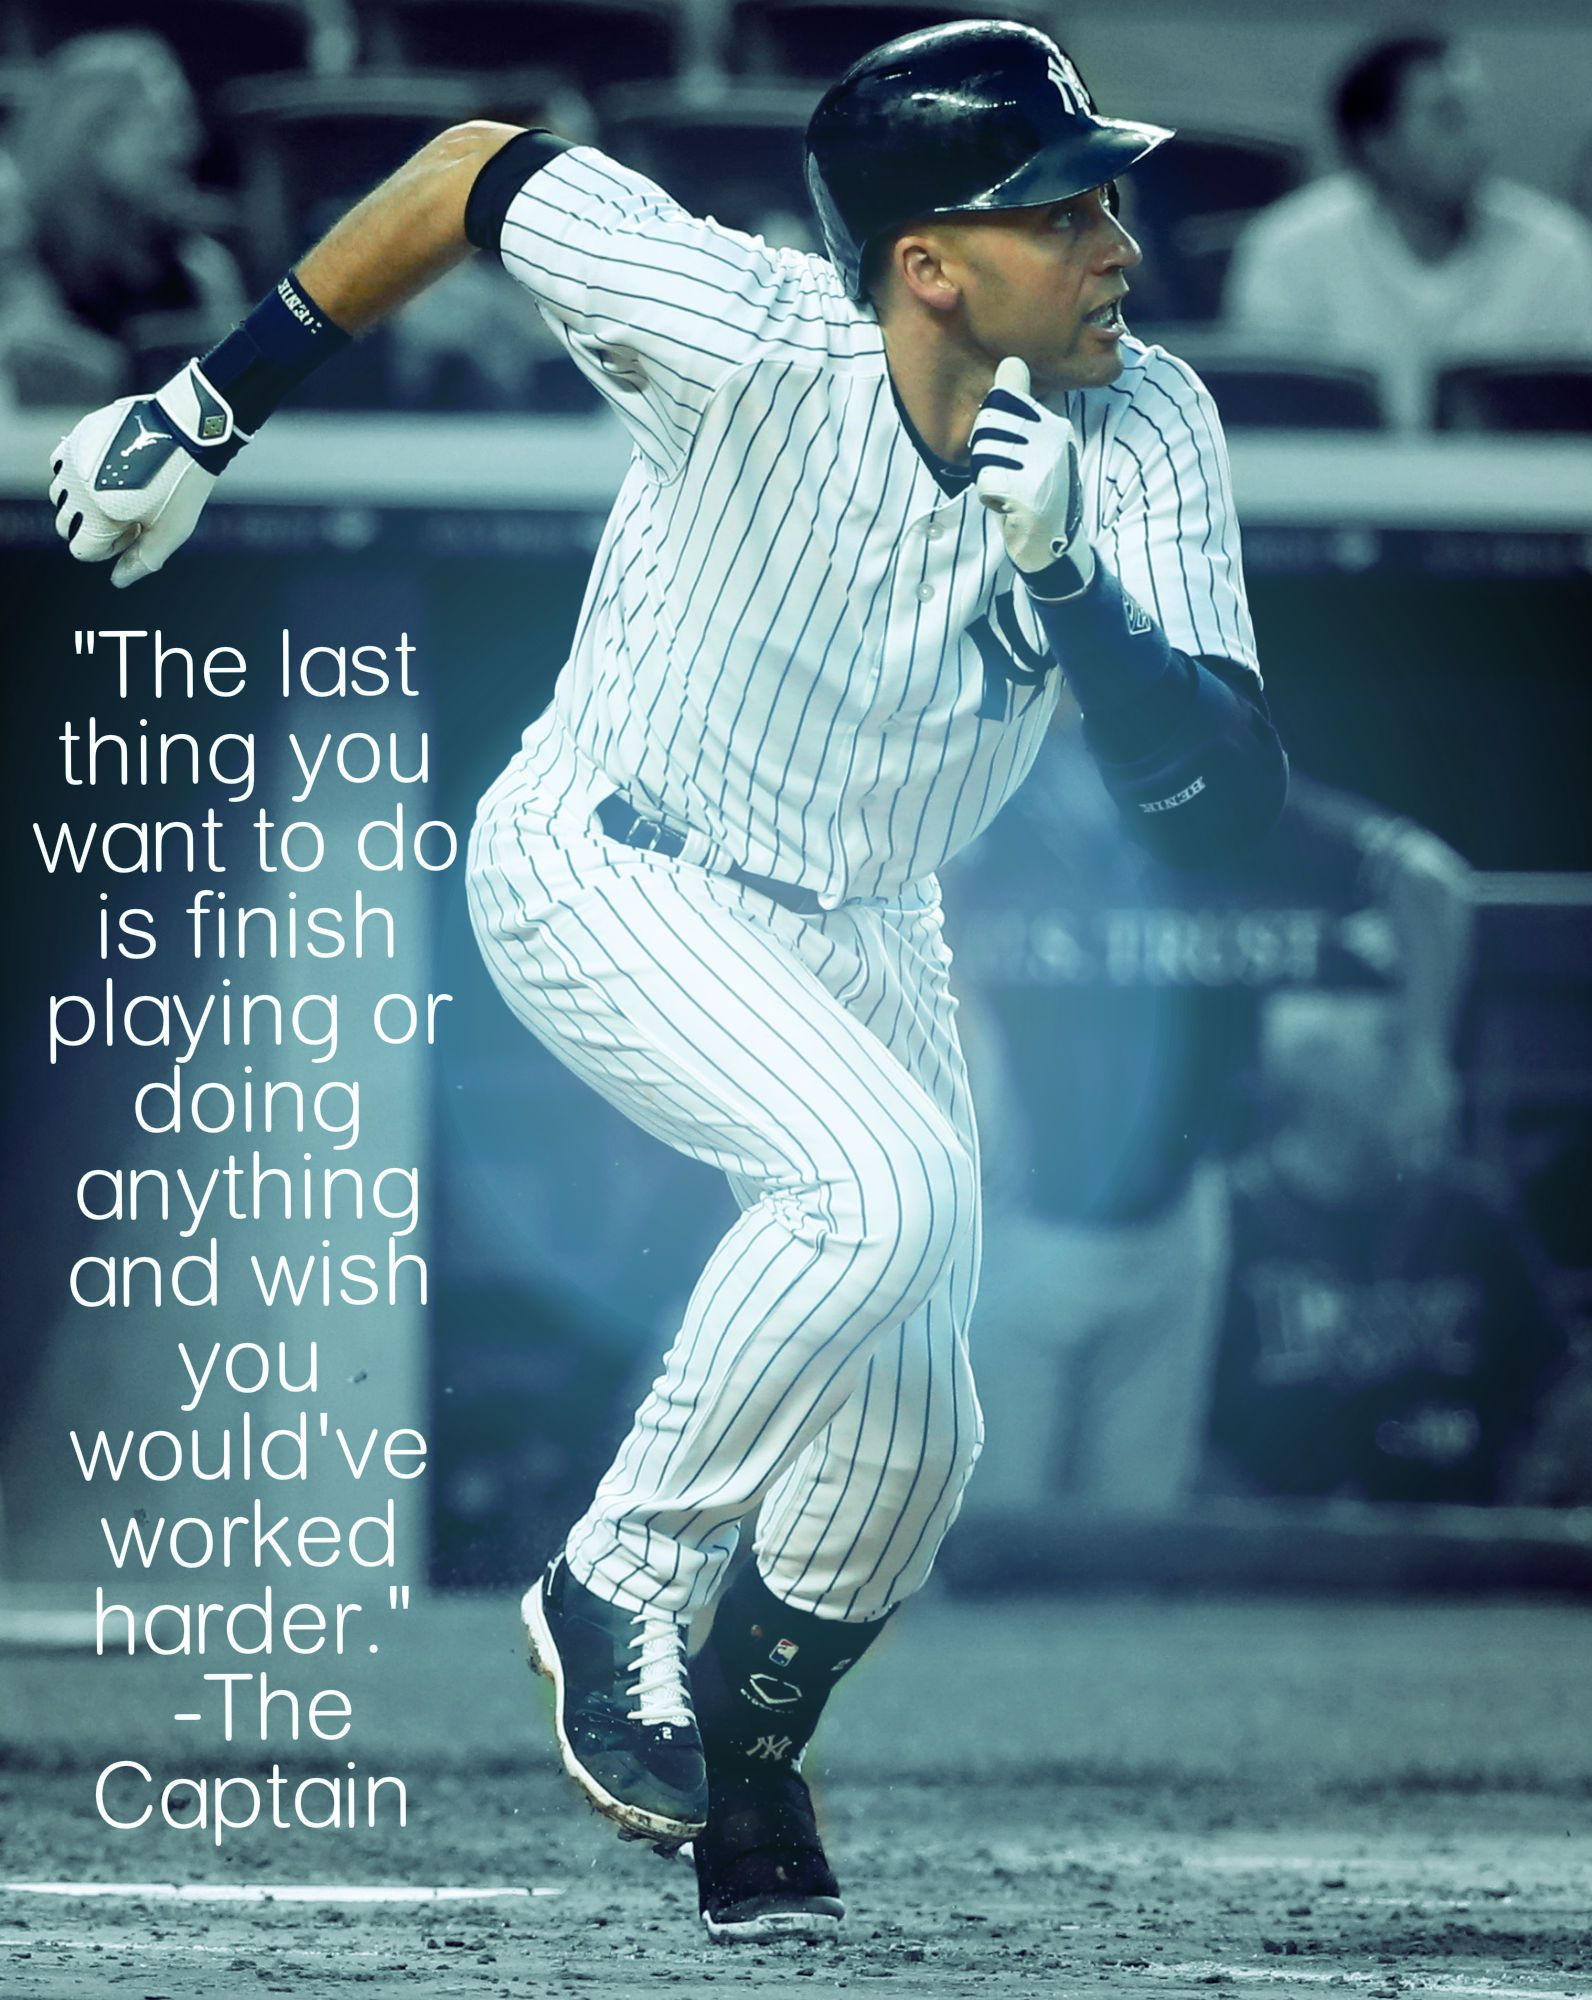 """""""The last thing you want to do is finish playing or finish anything and wish you would've worked harder."""" -Derek Jeter"""